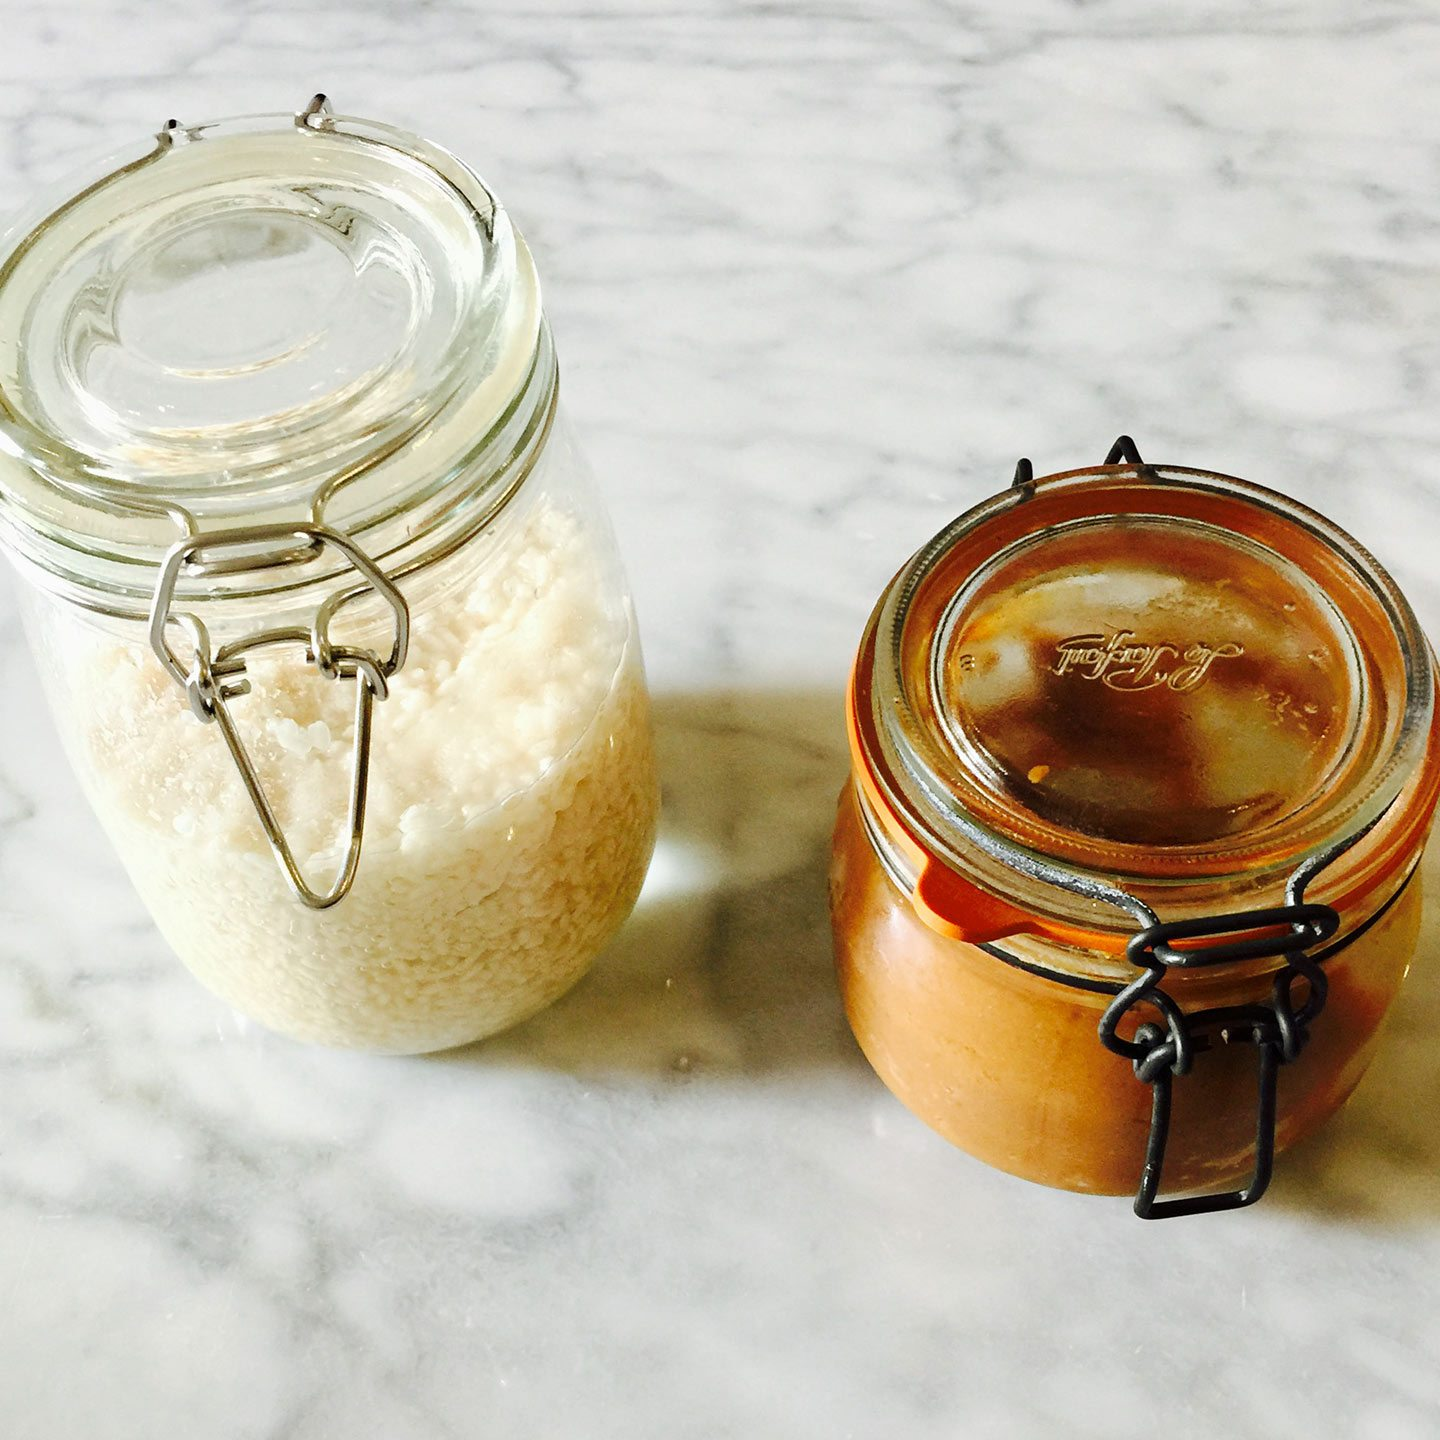 Miso jars filled with homemade Miso, a natural umami flavouring